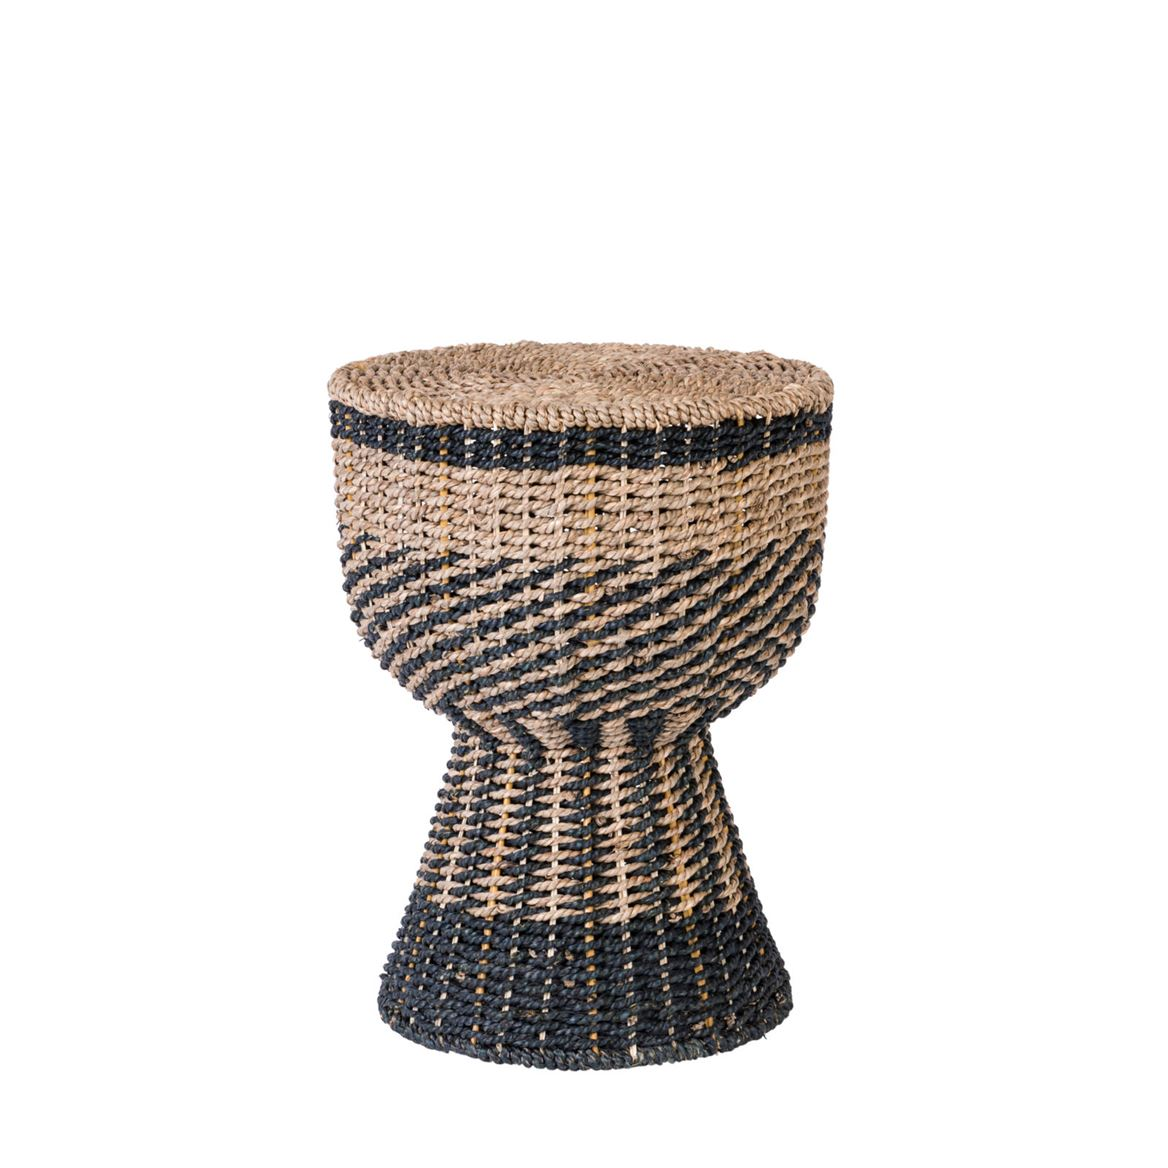 DJEMBE Puf negro, natural A 47 cm; Ø 36 cm_djembe-puf-negro,-natural-a-47-cm;-ø-36-cm